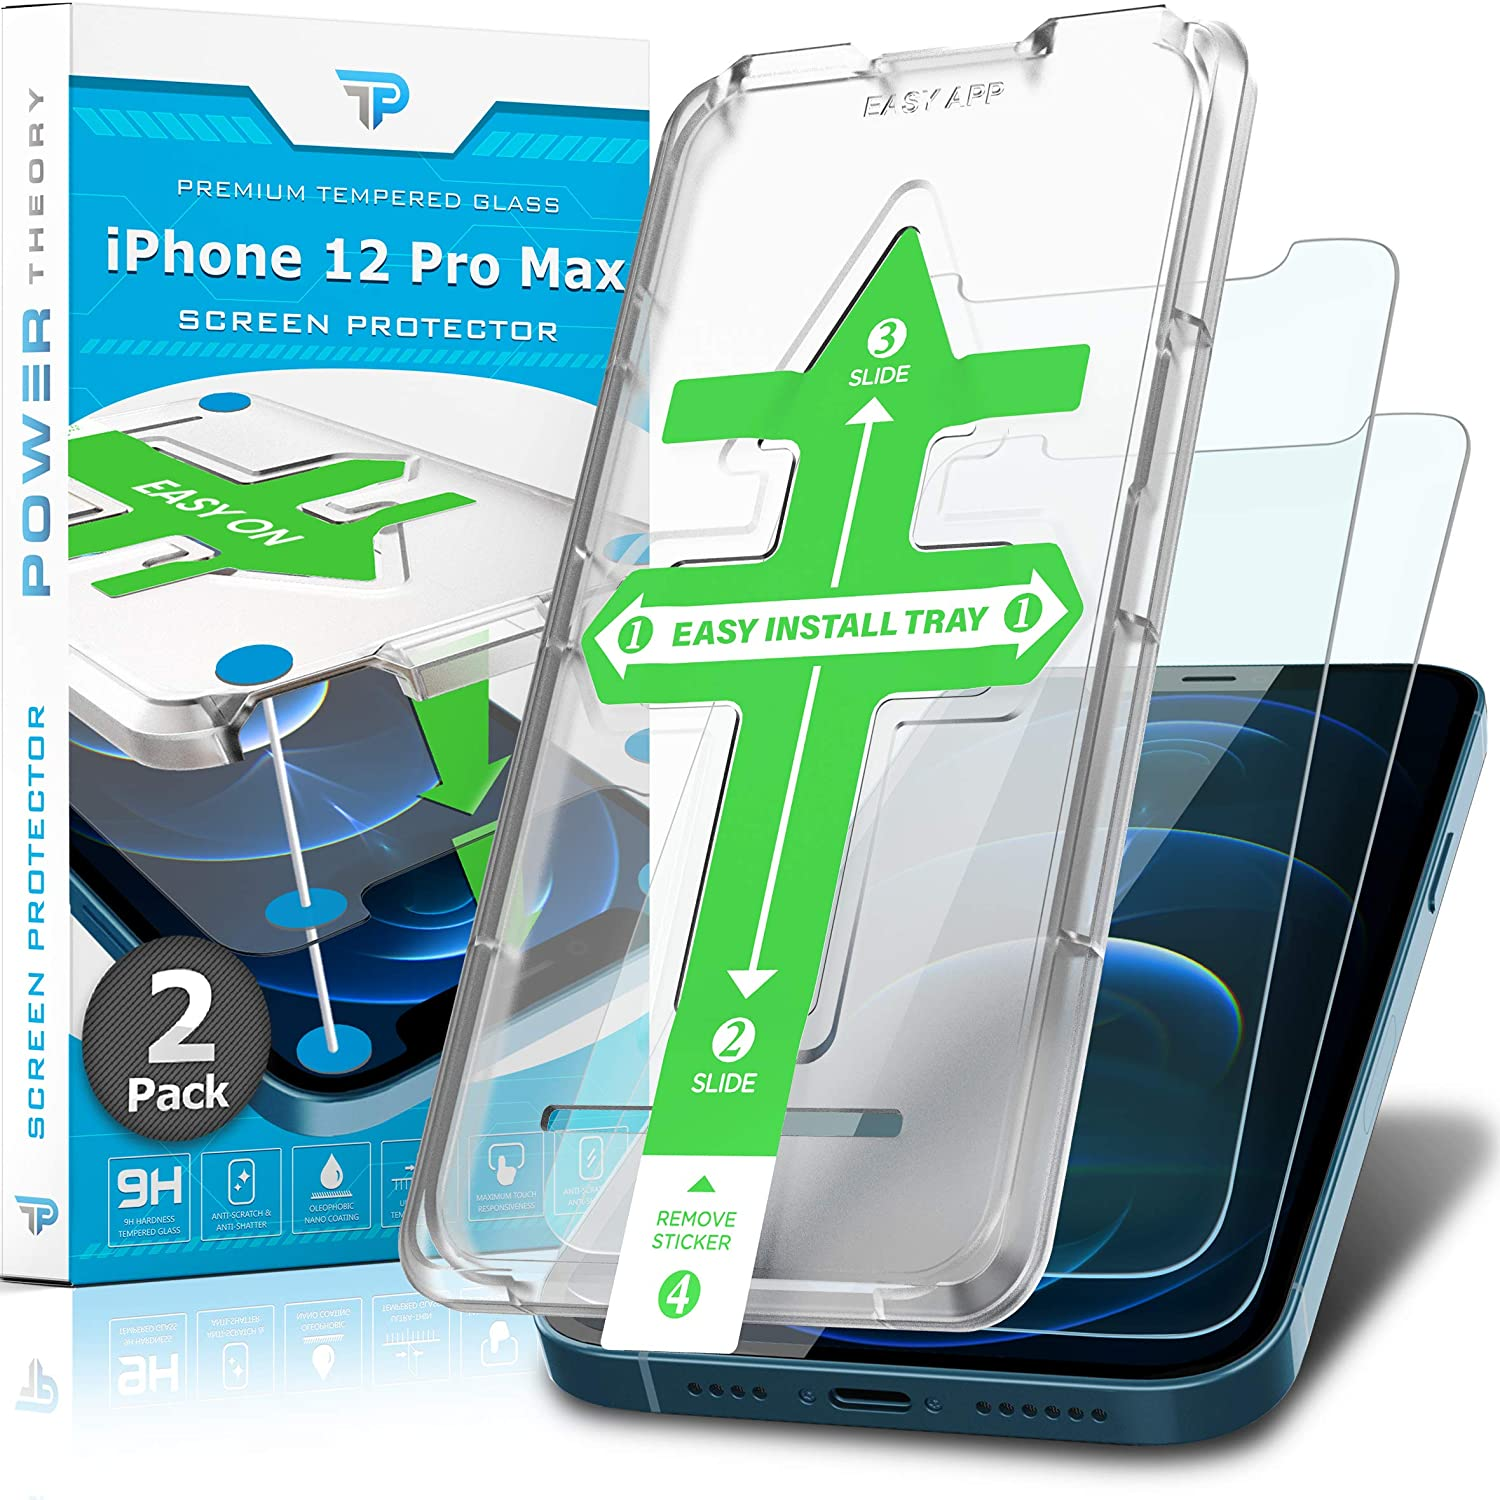 Power Theory Screen Protector for iPhone 12 Pro Max [2-Pack]